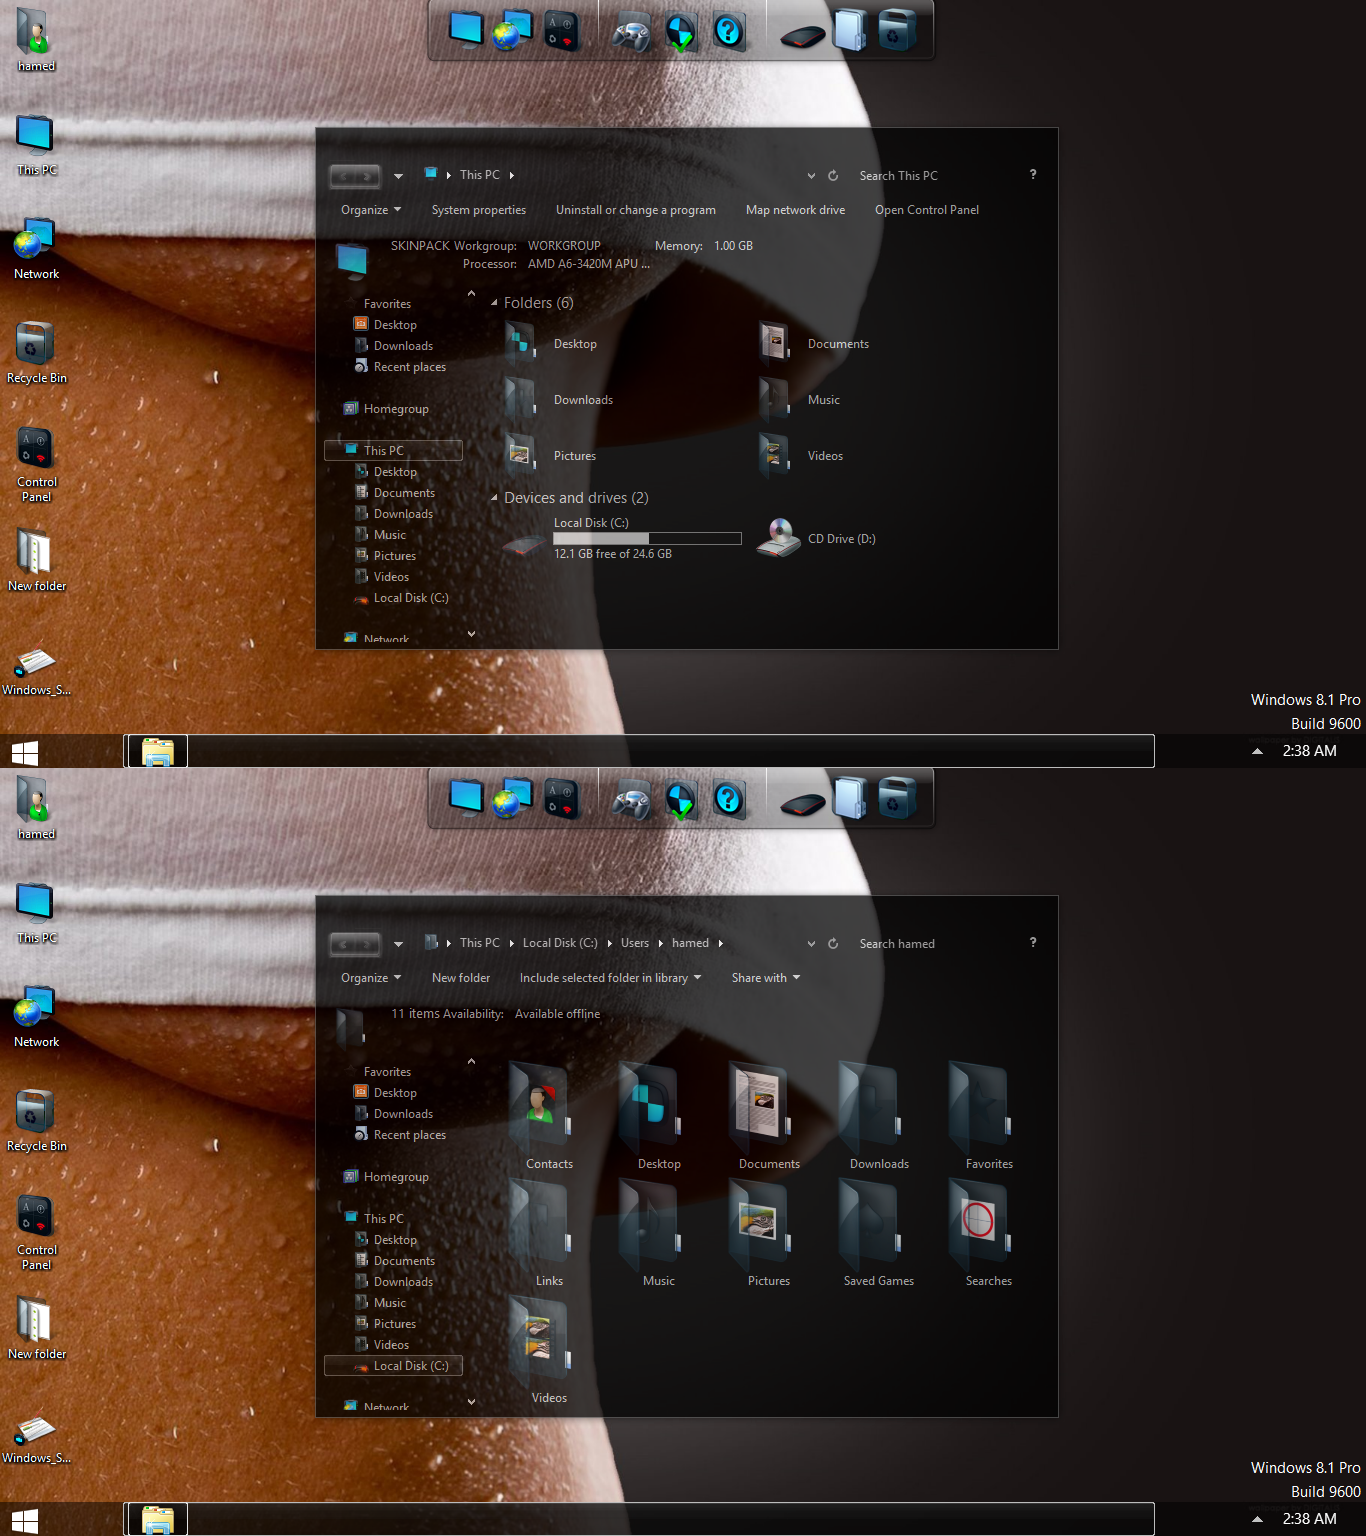 Transform windows 7 to windows 8 win 8 skin pack youtube.